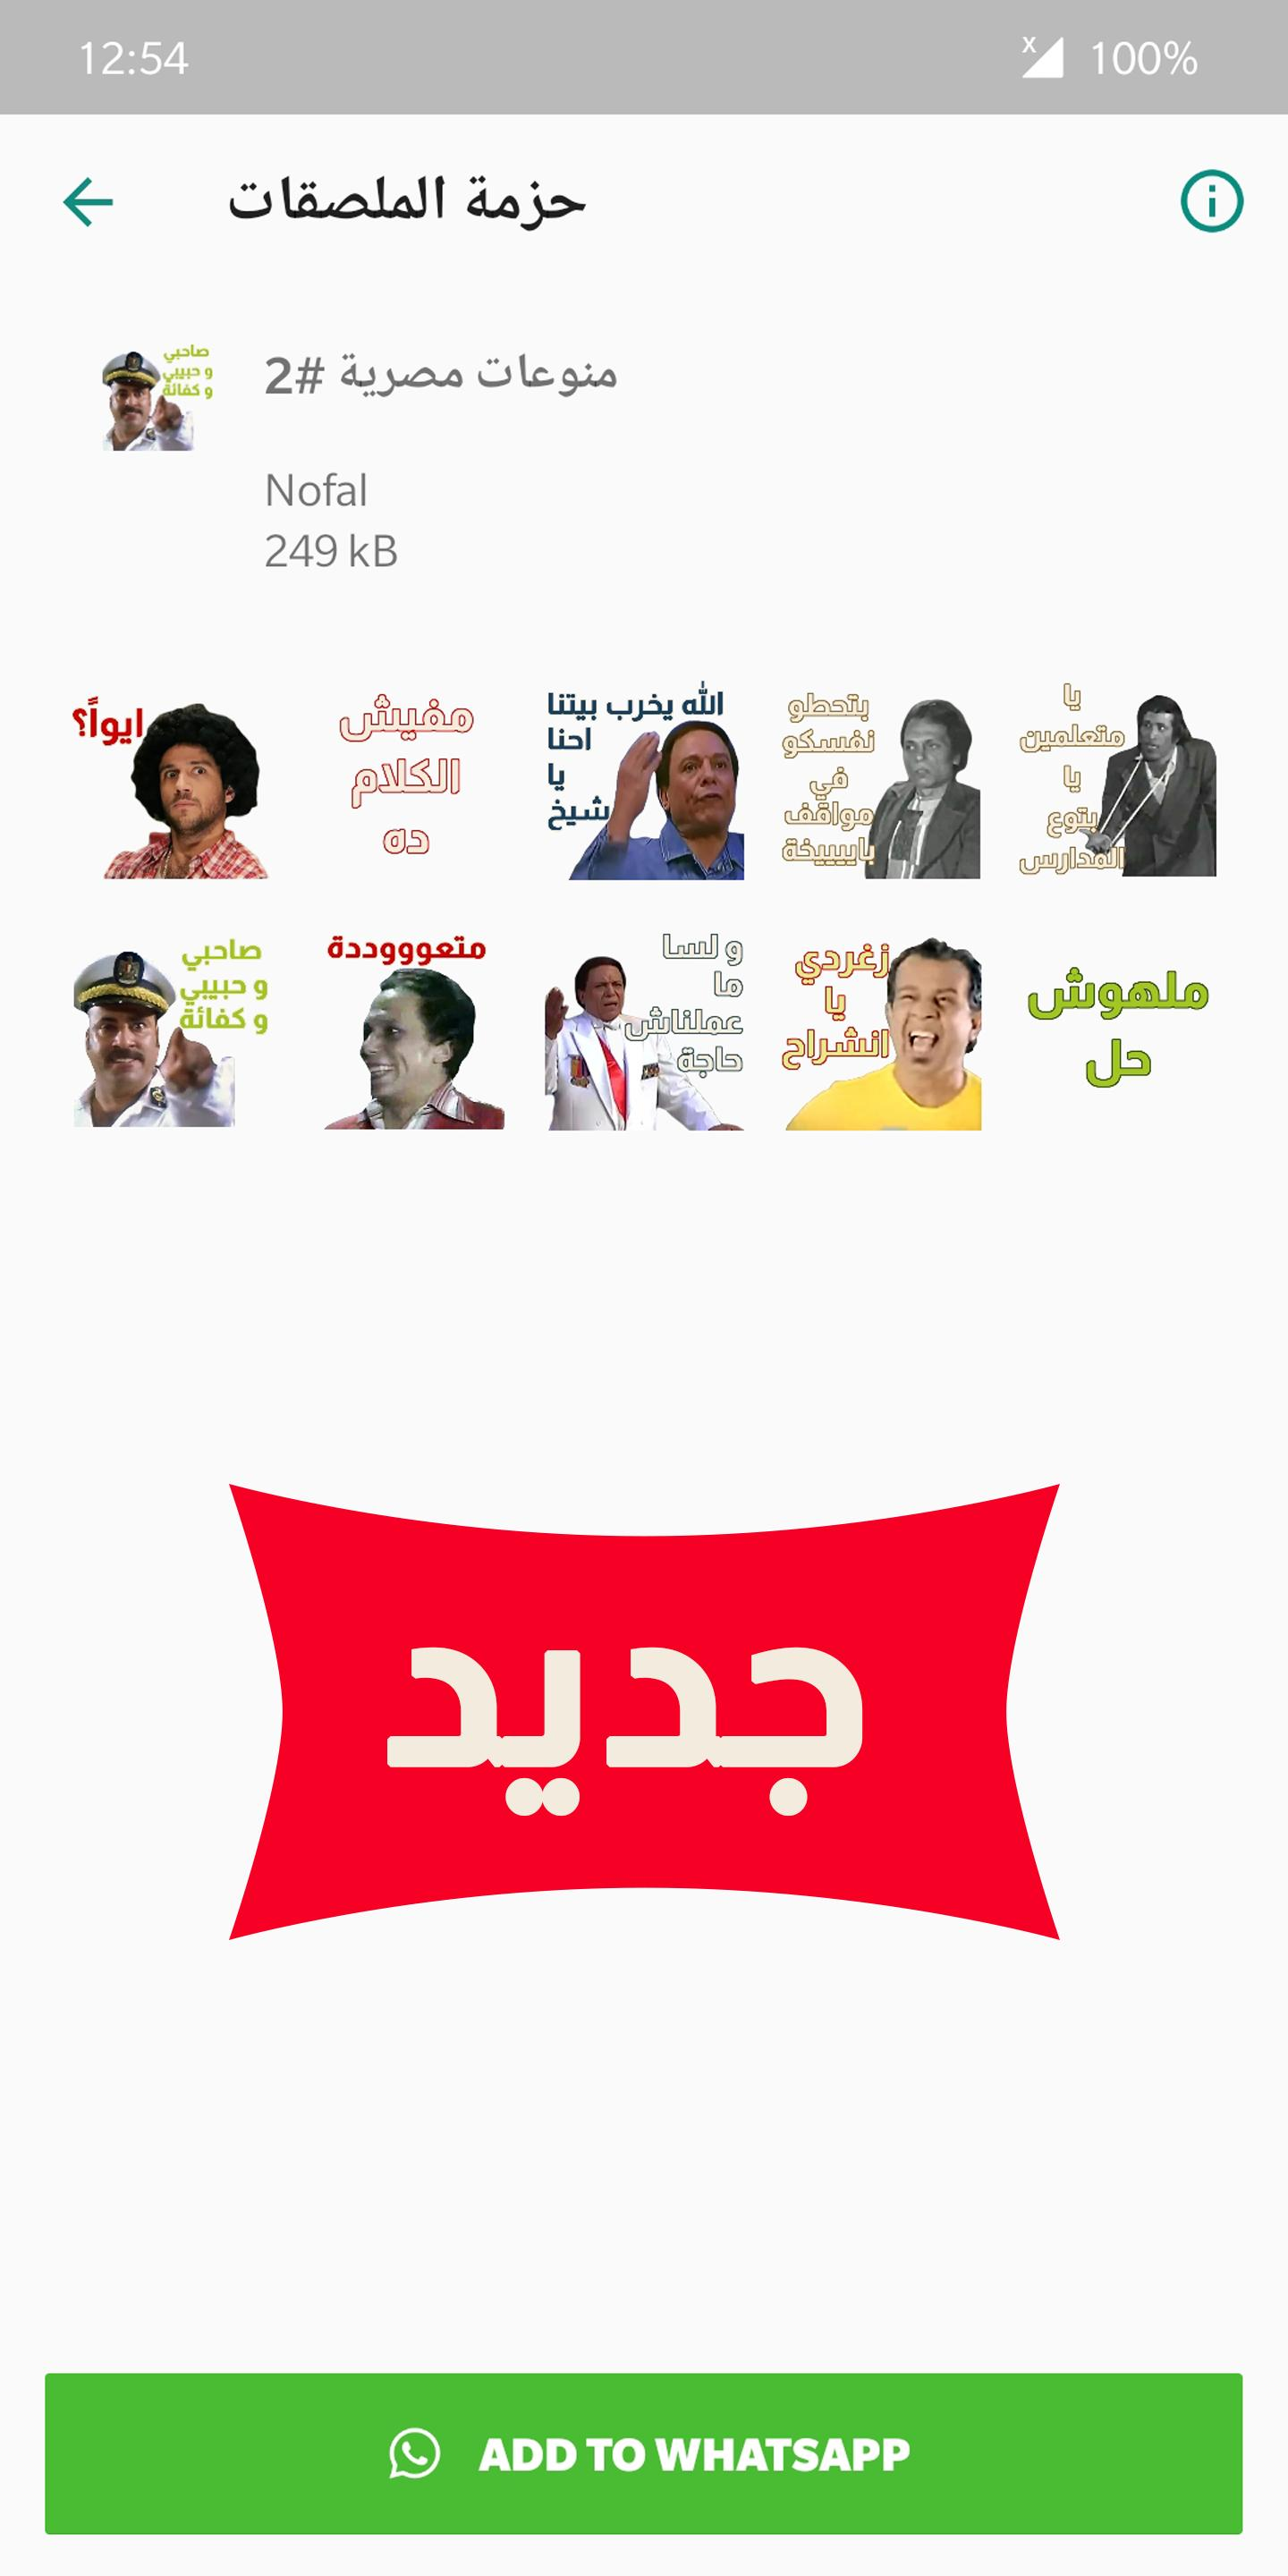 ملصقات و ستيكرات واتسابwastickerapps Stickers 2020 For Android